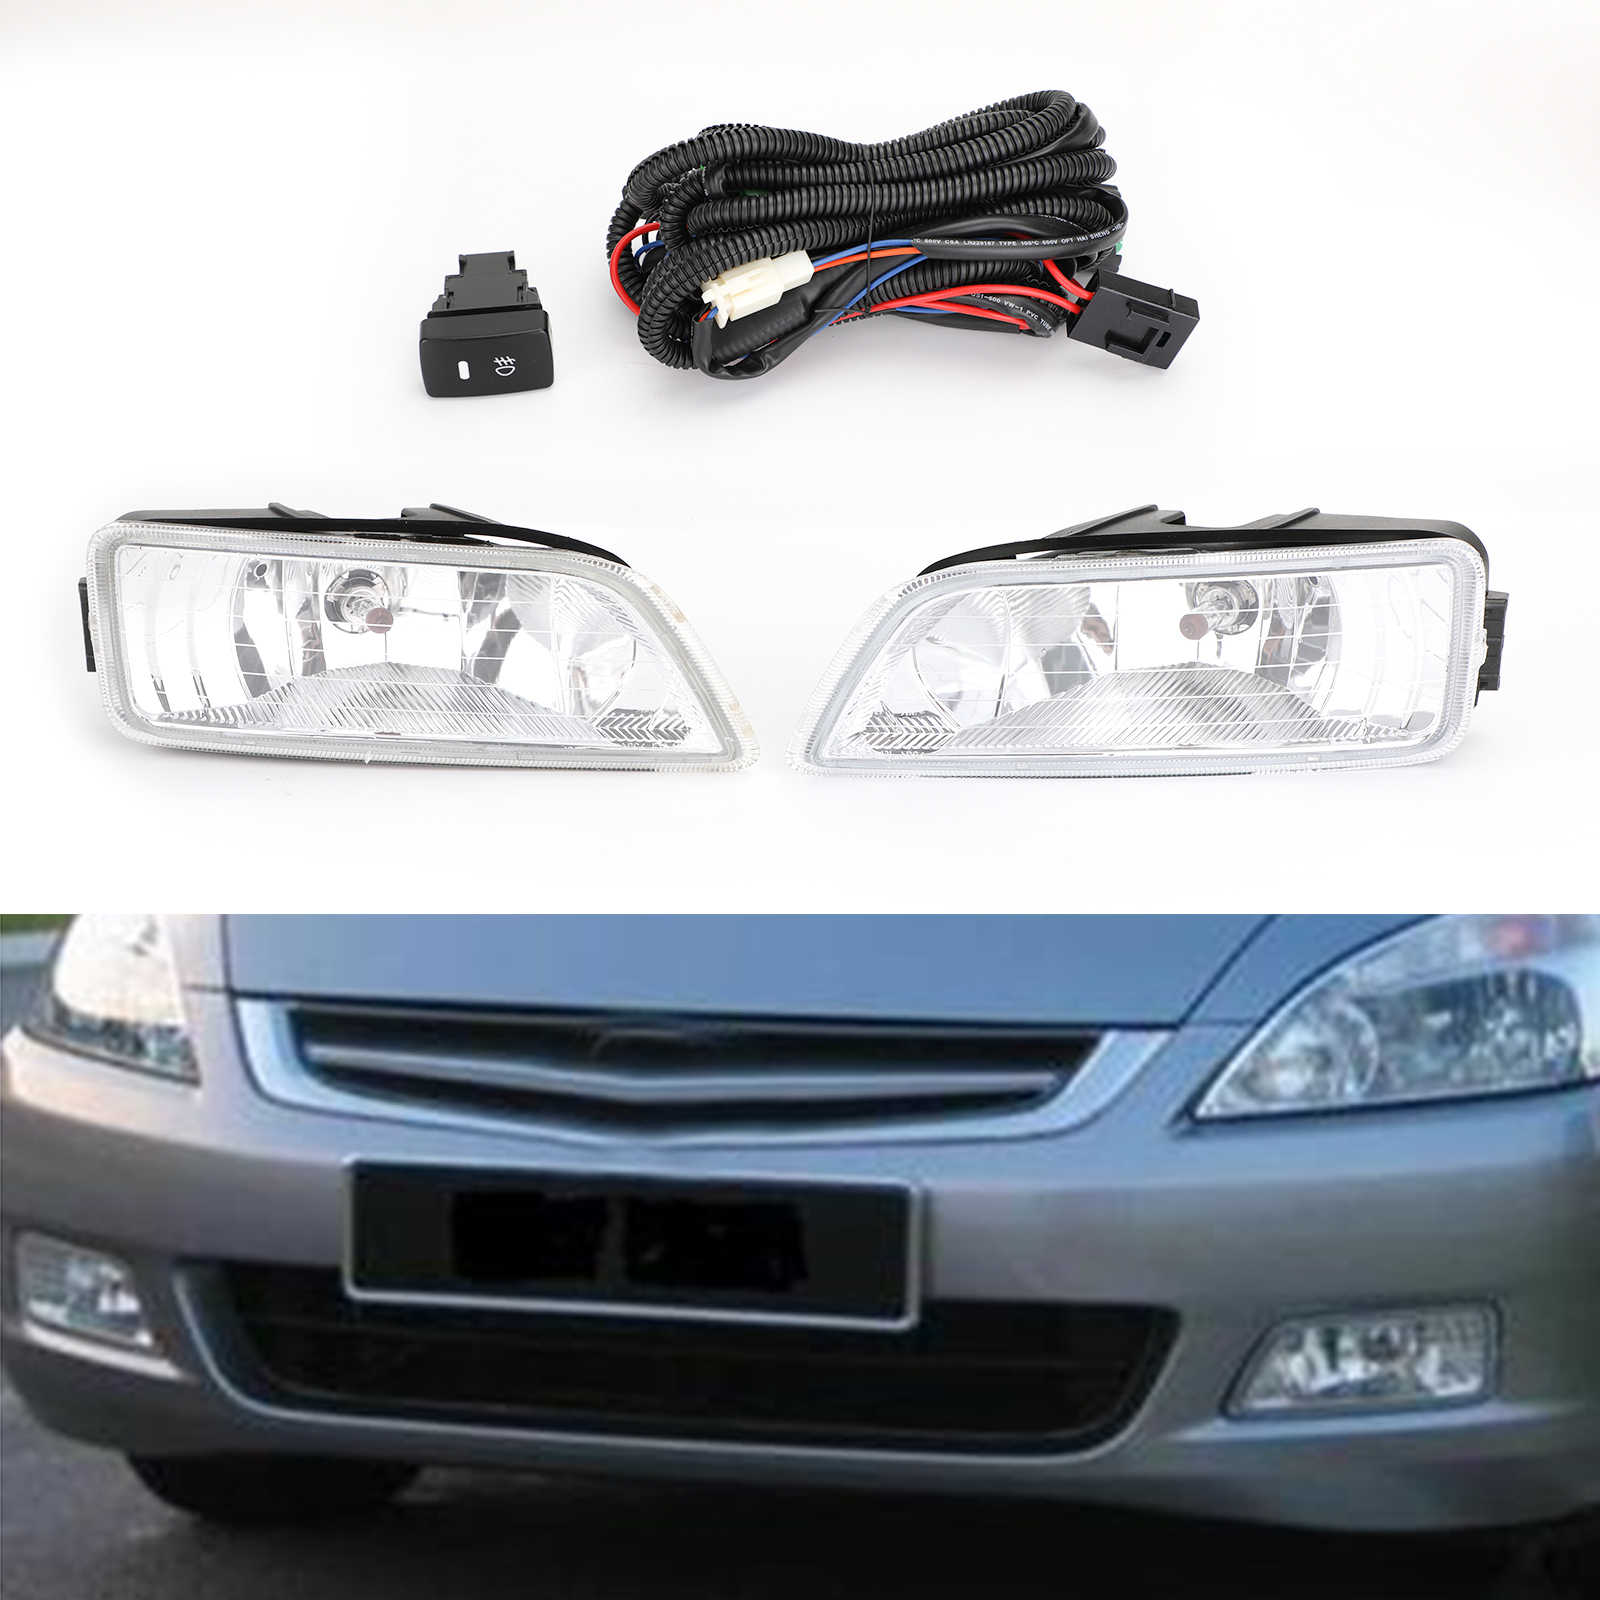 For Acura Tl 2004 2005 2006 Excellent Rf Remote Bluetooth App Multi Color Ultra Bright Rgb Led Angel Eyes Halo Ring Kit Car Light Assembly Aliexpress